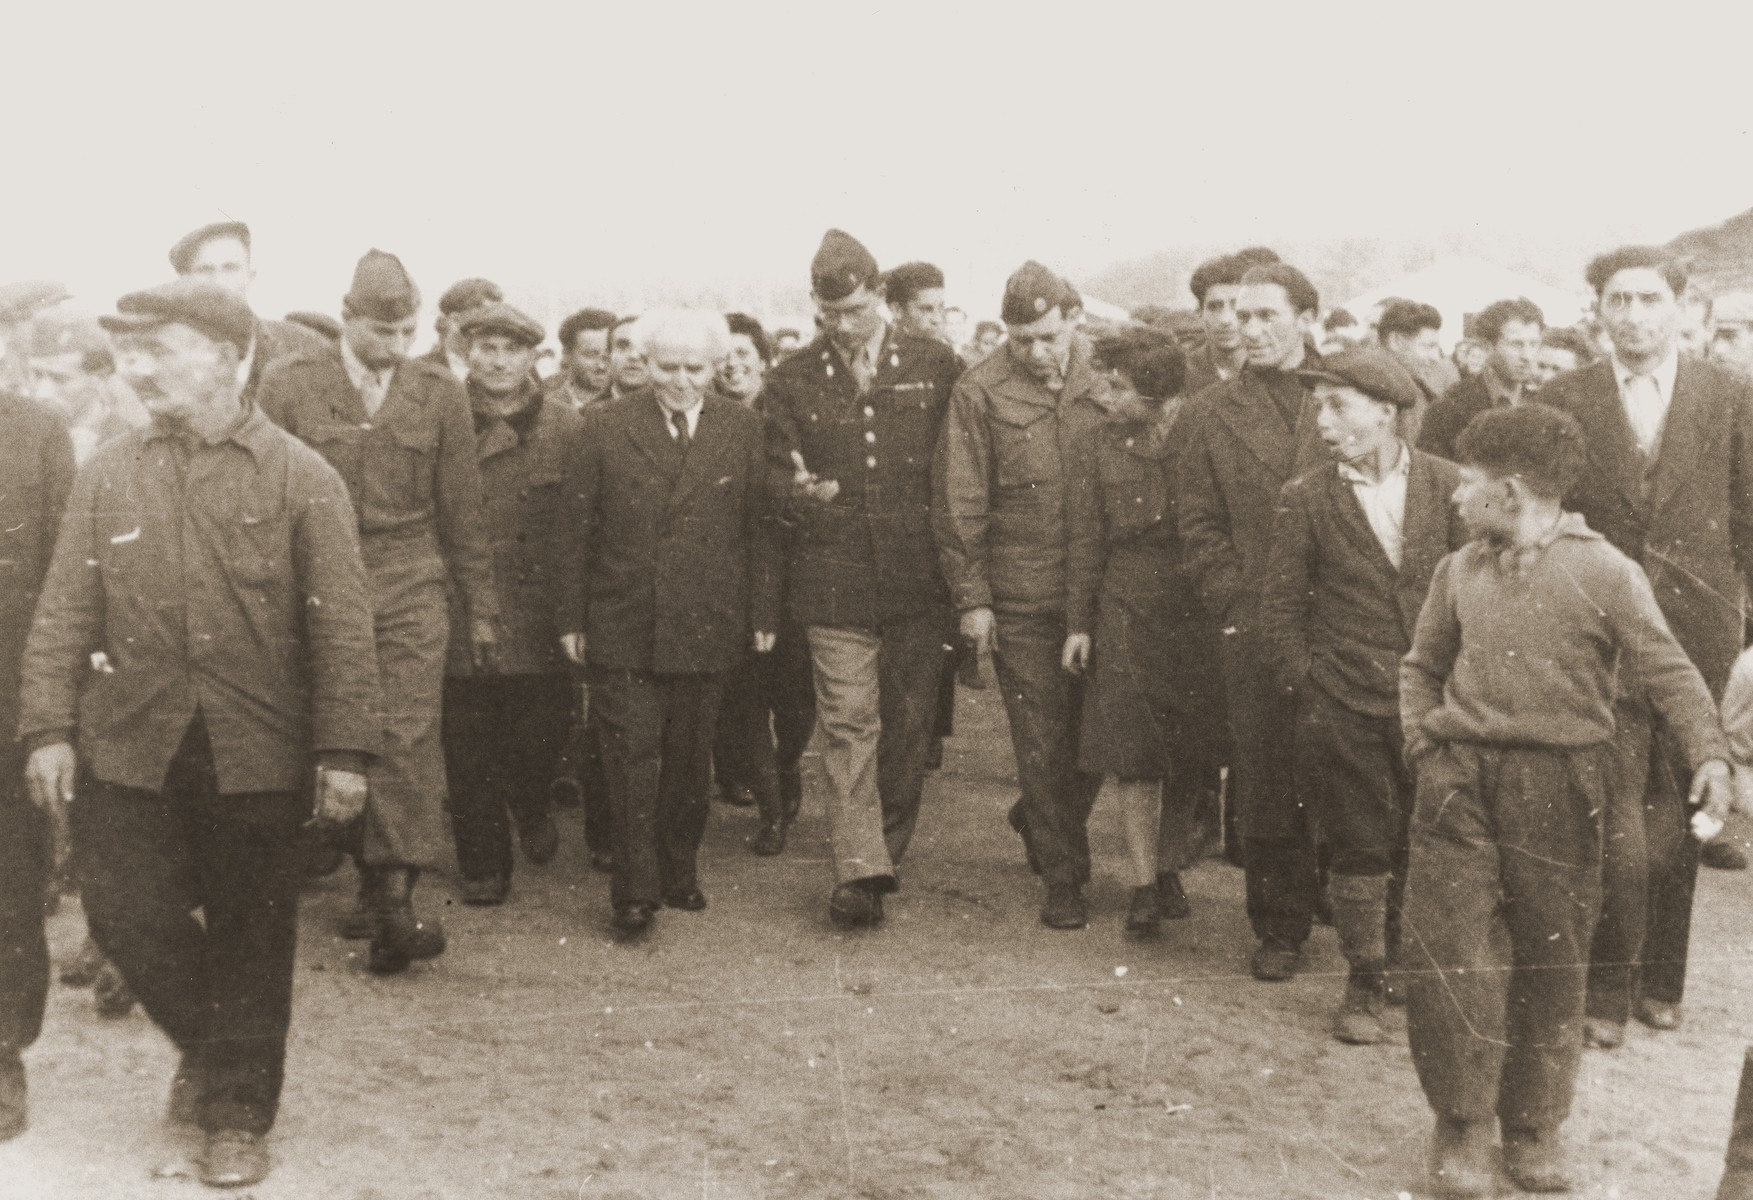 Rabbi Herbert Friedman escorts Zionist leader David Ben-Gurion through a crowd of admirers in the Babenhausen DP camp.